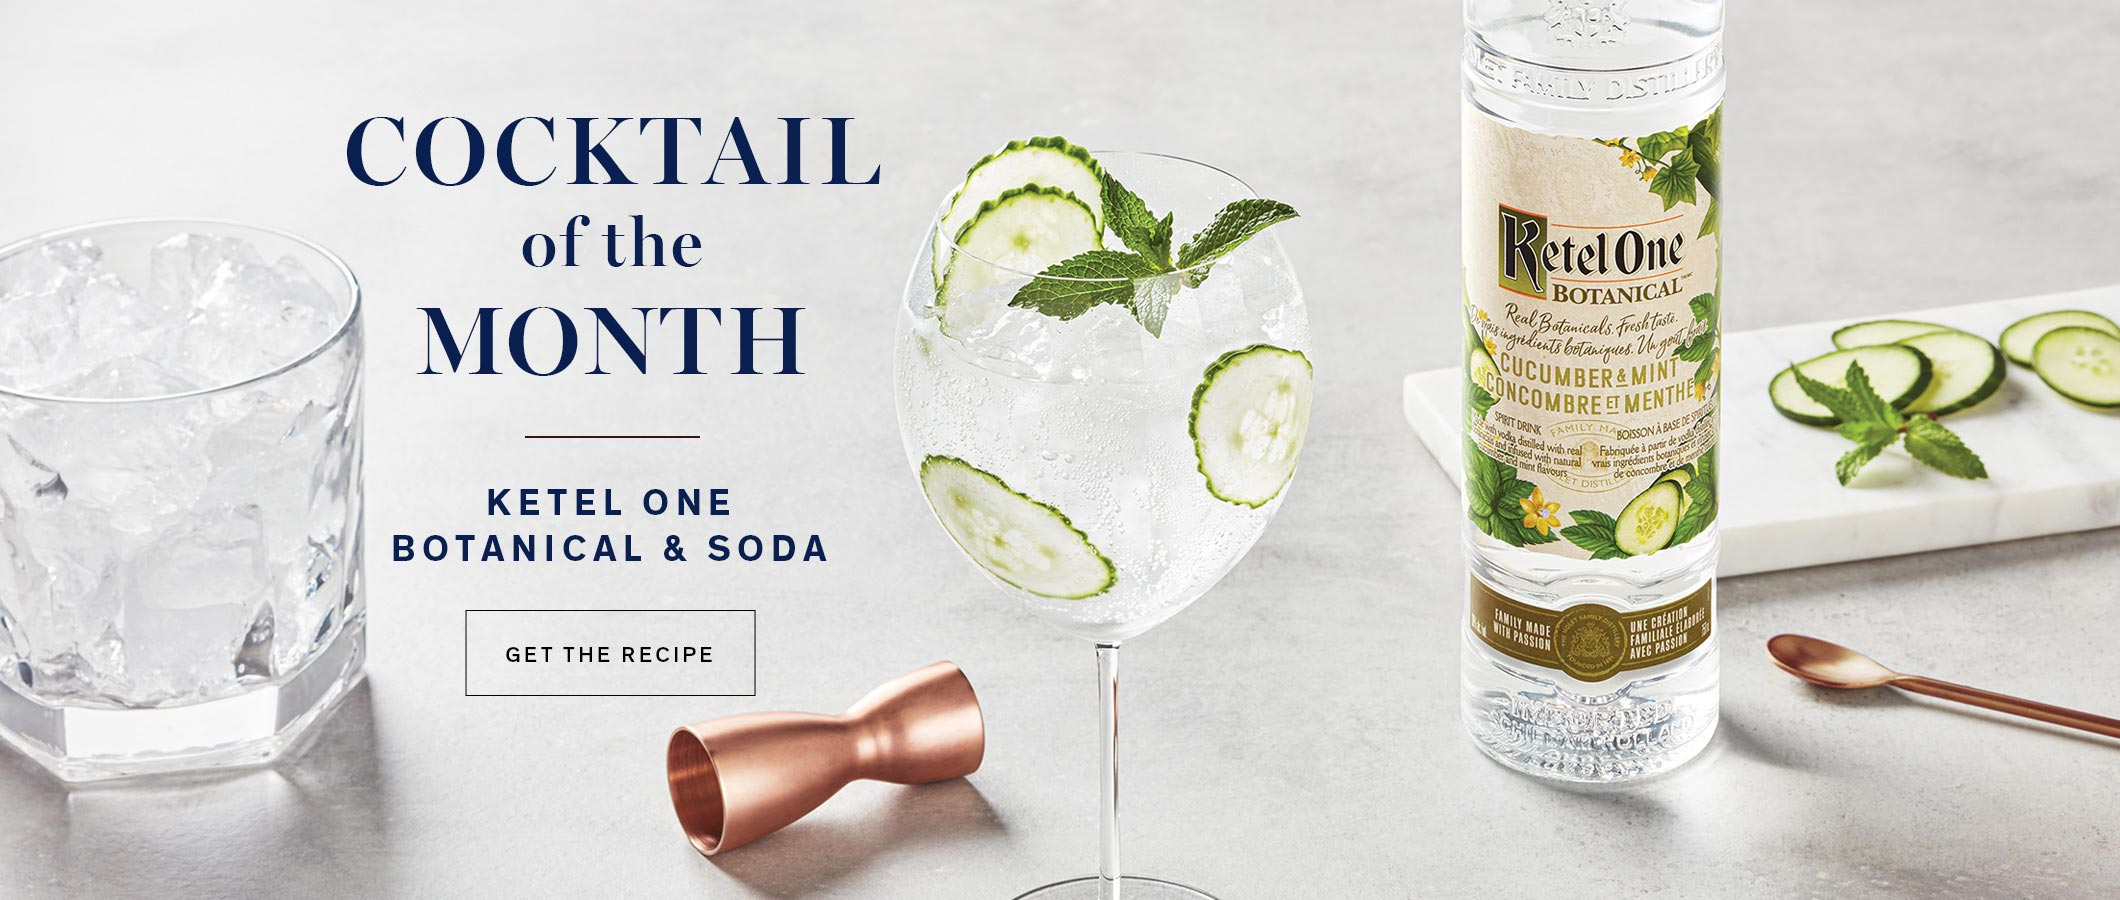 Cocktail of the Month  Ketel One Botanical & Soda.  GET THE RECIPE